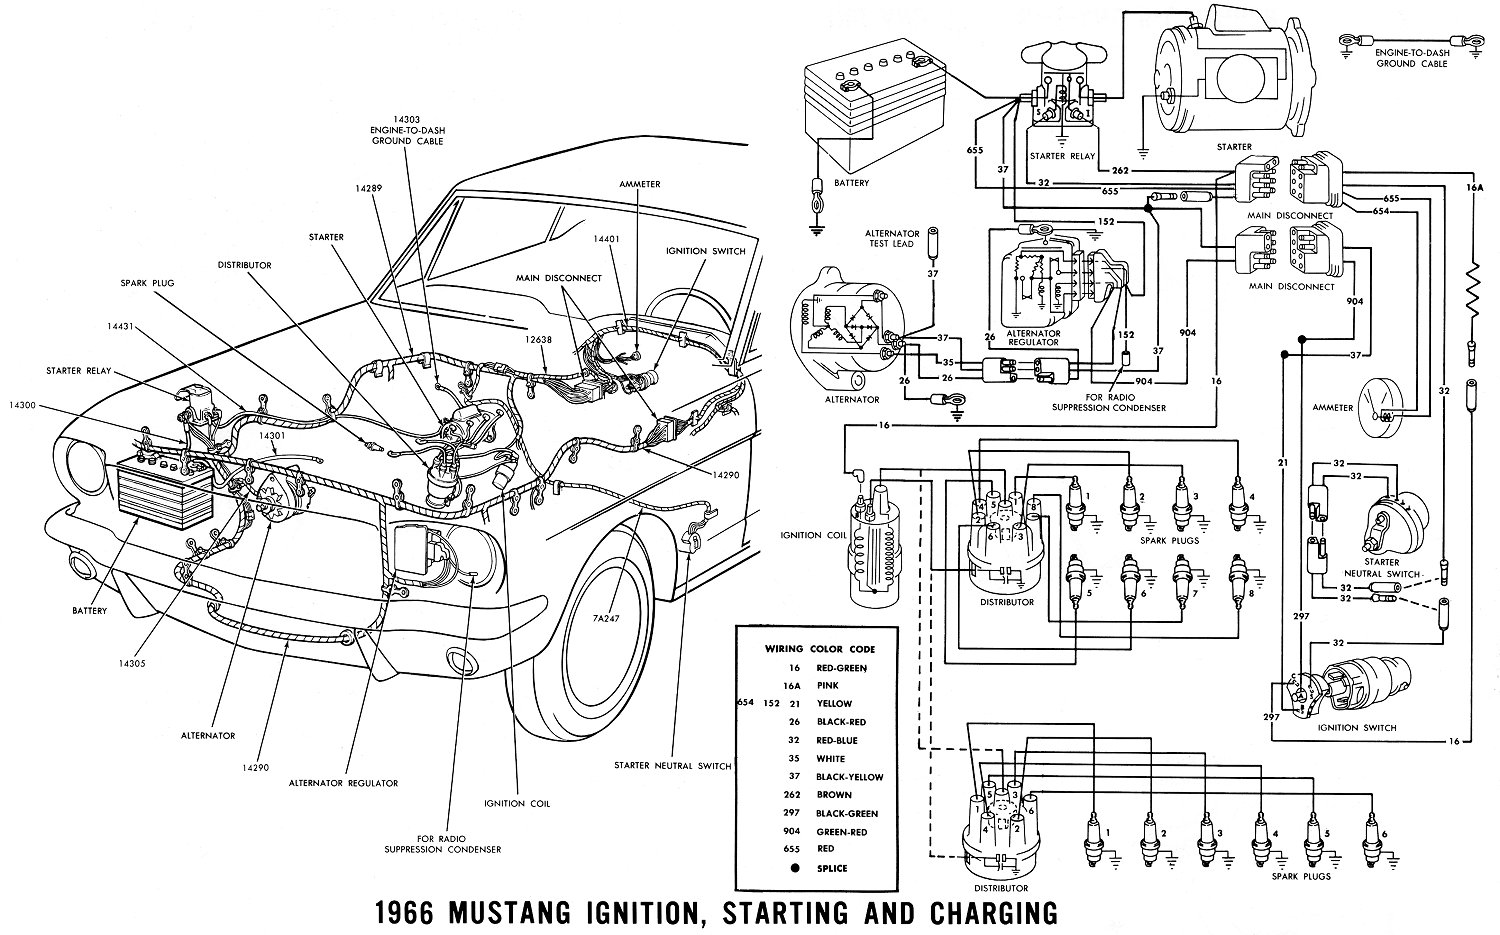 70 Mustang Wiring Schematic Library 66 Nova Voltage Regulator Diagram Harness Instrument Cluster Detail Ignition